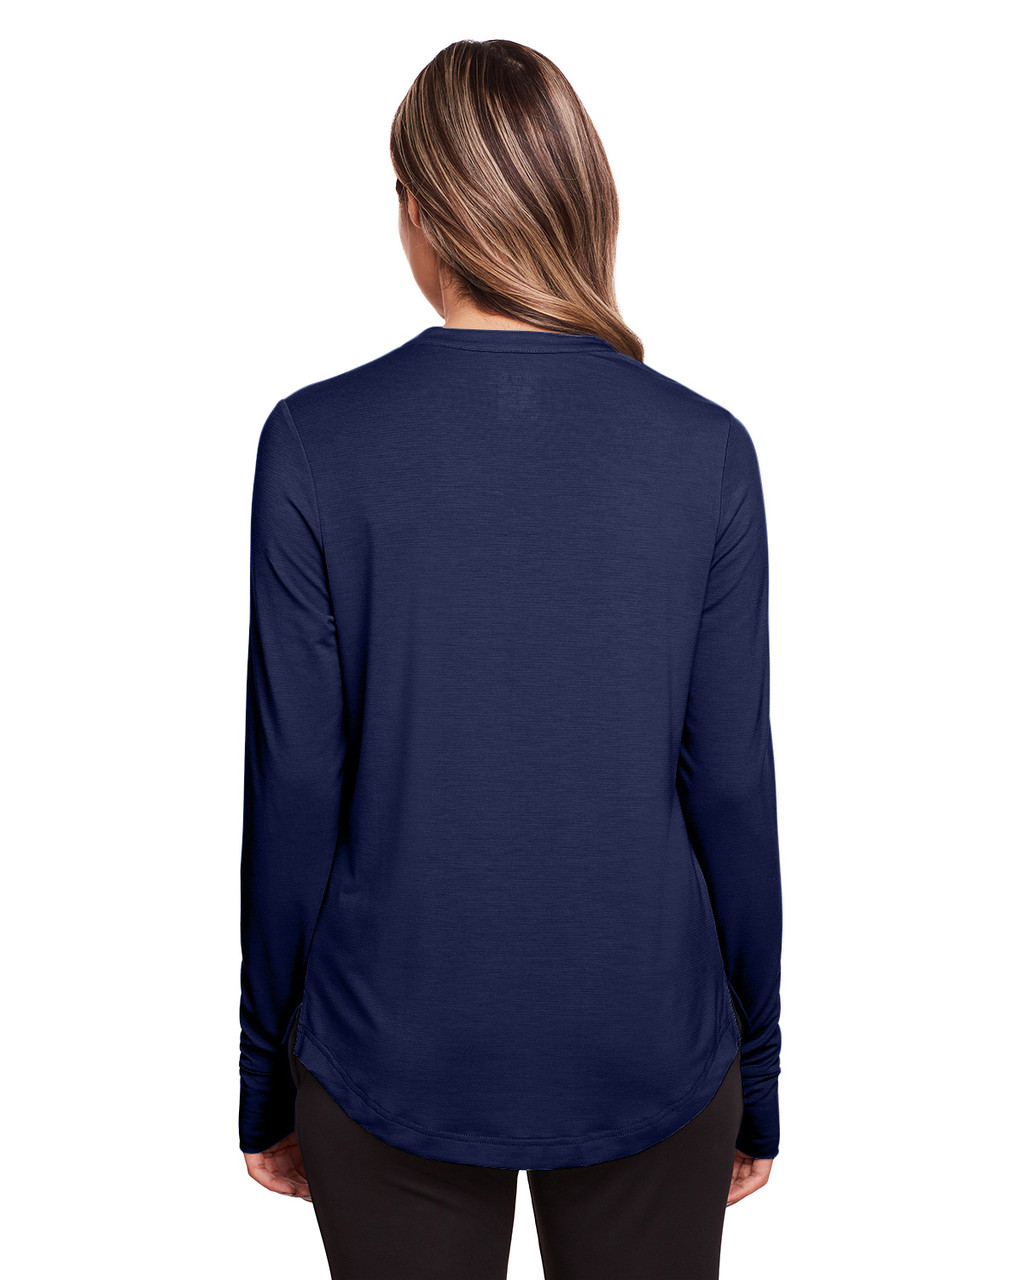 Classic Navy - Back, NE400W North End Ladies' Jaq Snap-Up Stretch Performance Pullover Long Sleeve Shirt | BlankClothing.ca